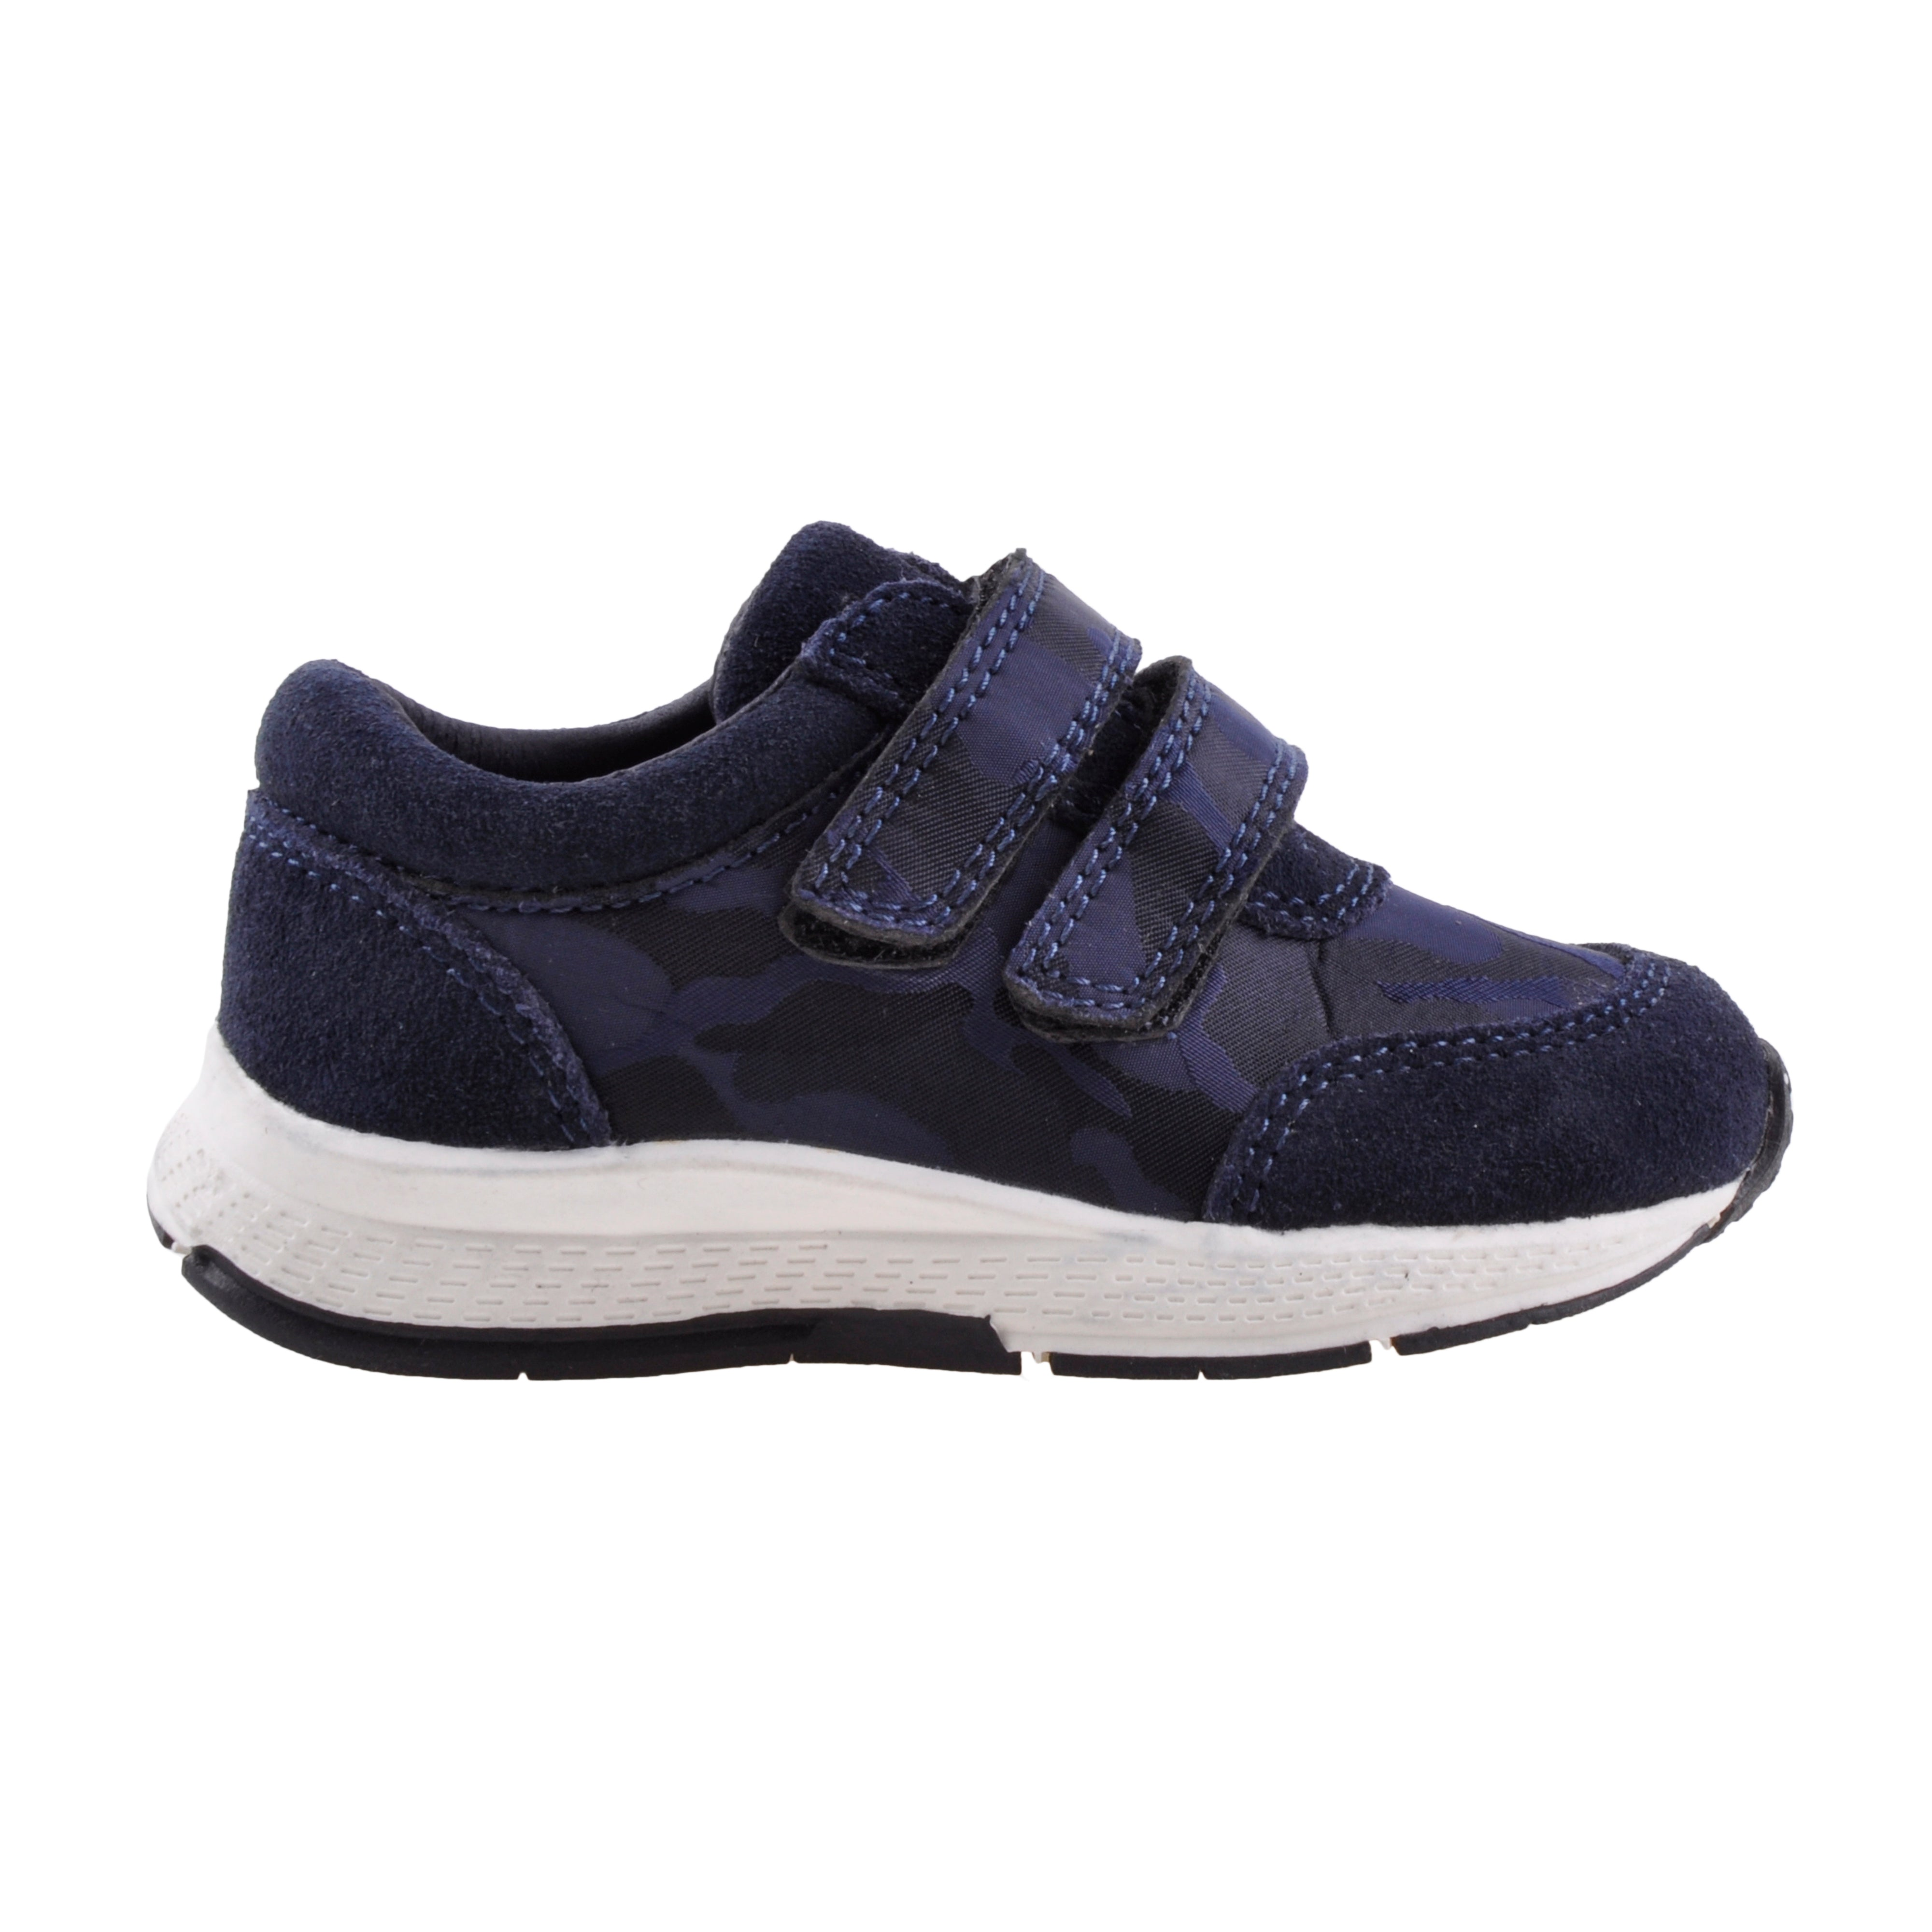 Petit by Sofie Schnoor - Sneakers m. velcro, Laurits - Blue